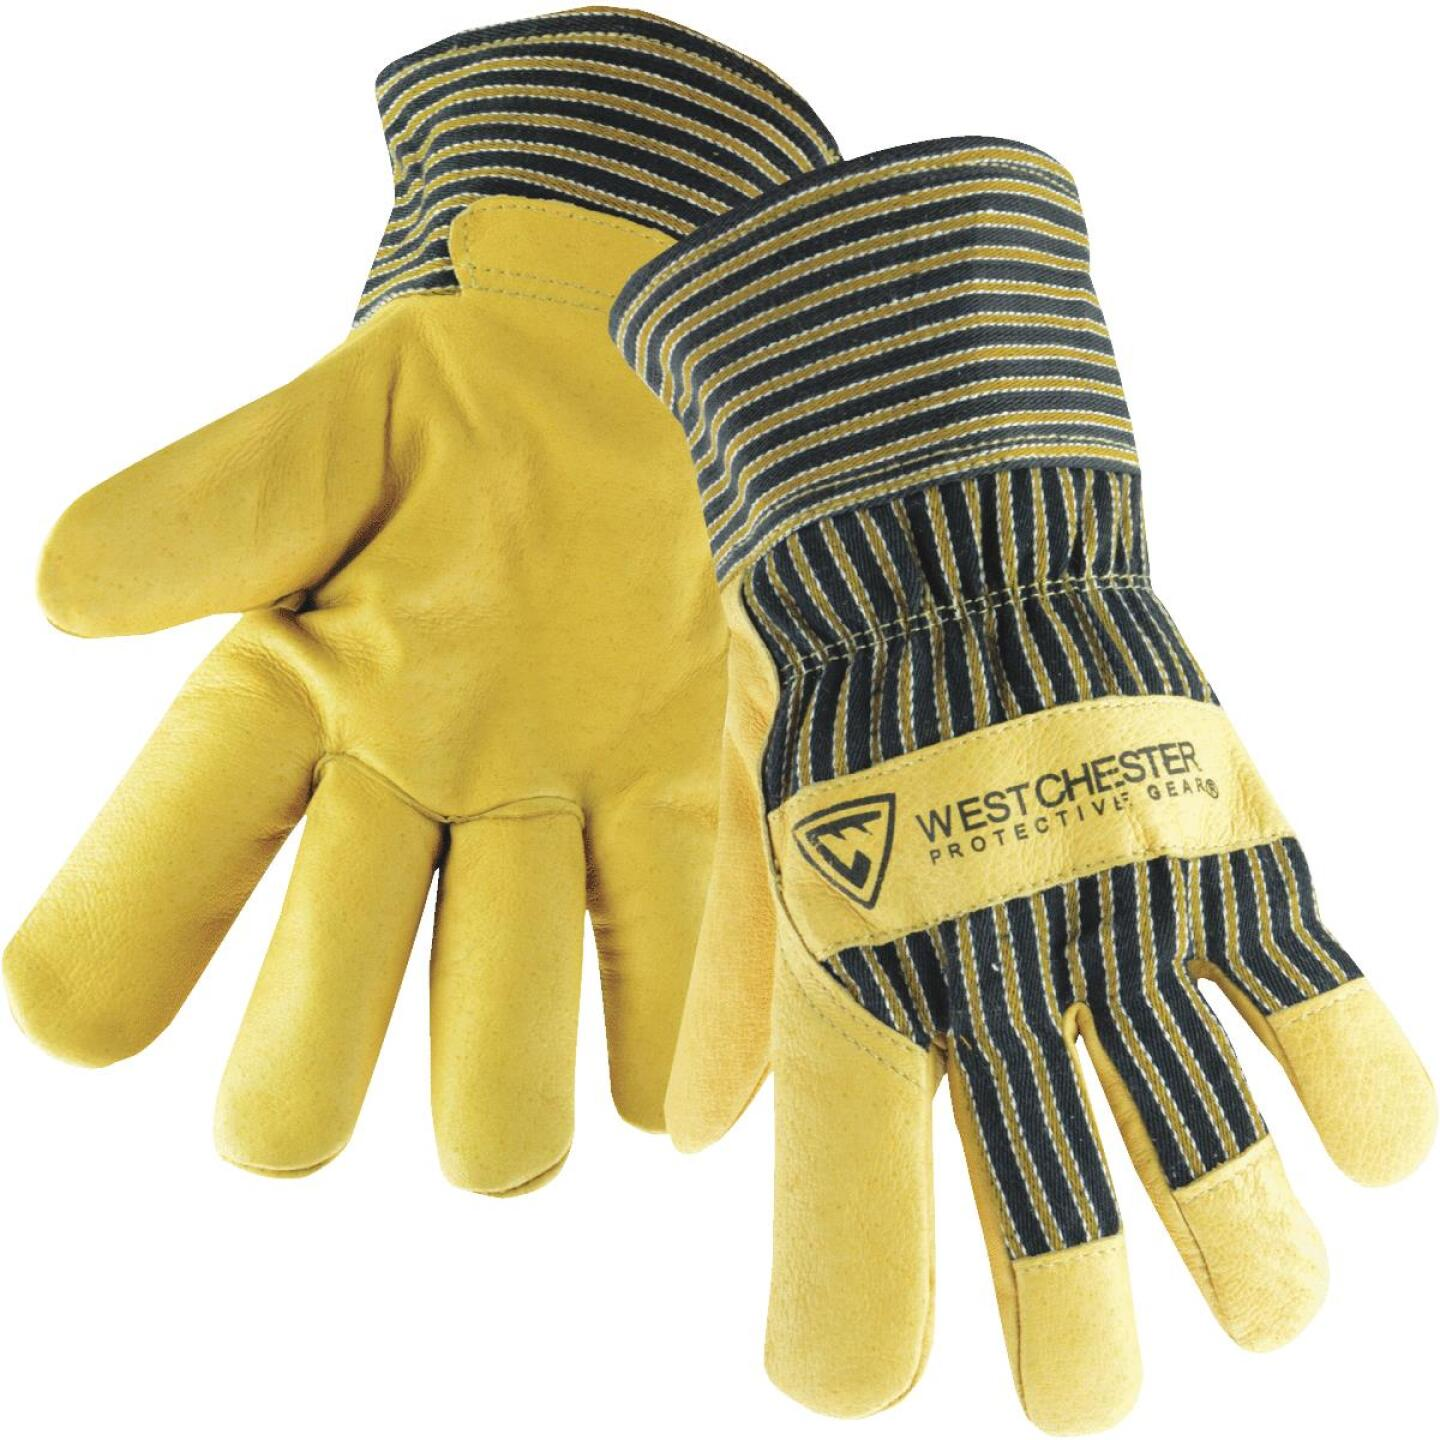 West Chester Protective Gear Men's Large Grain Pigskin Leather Work Glove Image 1